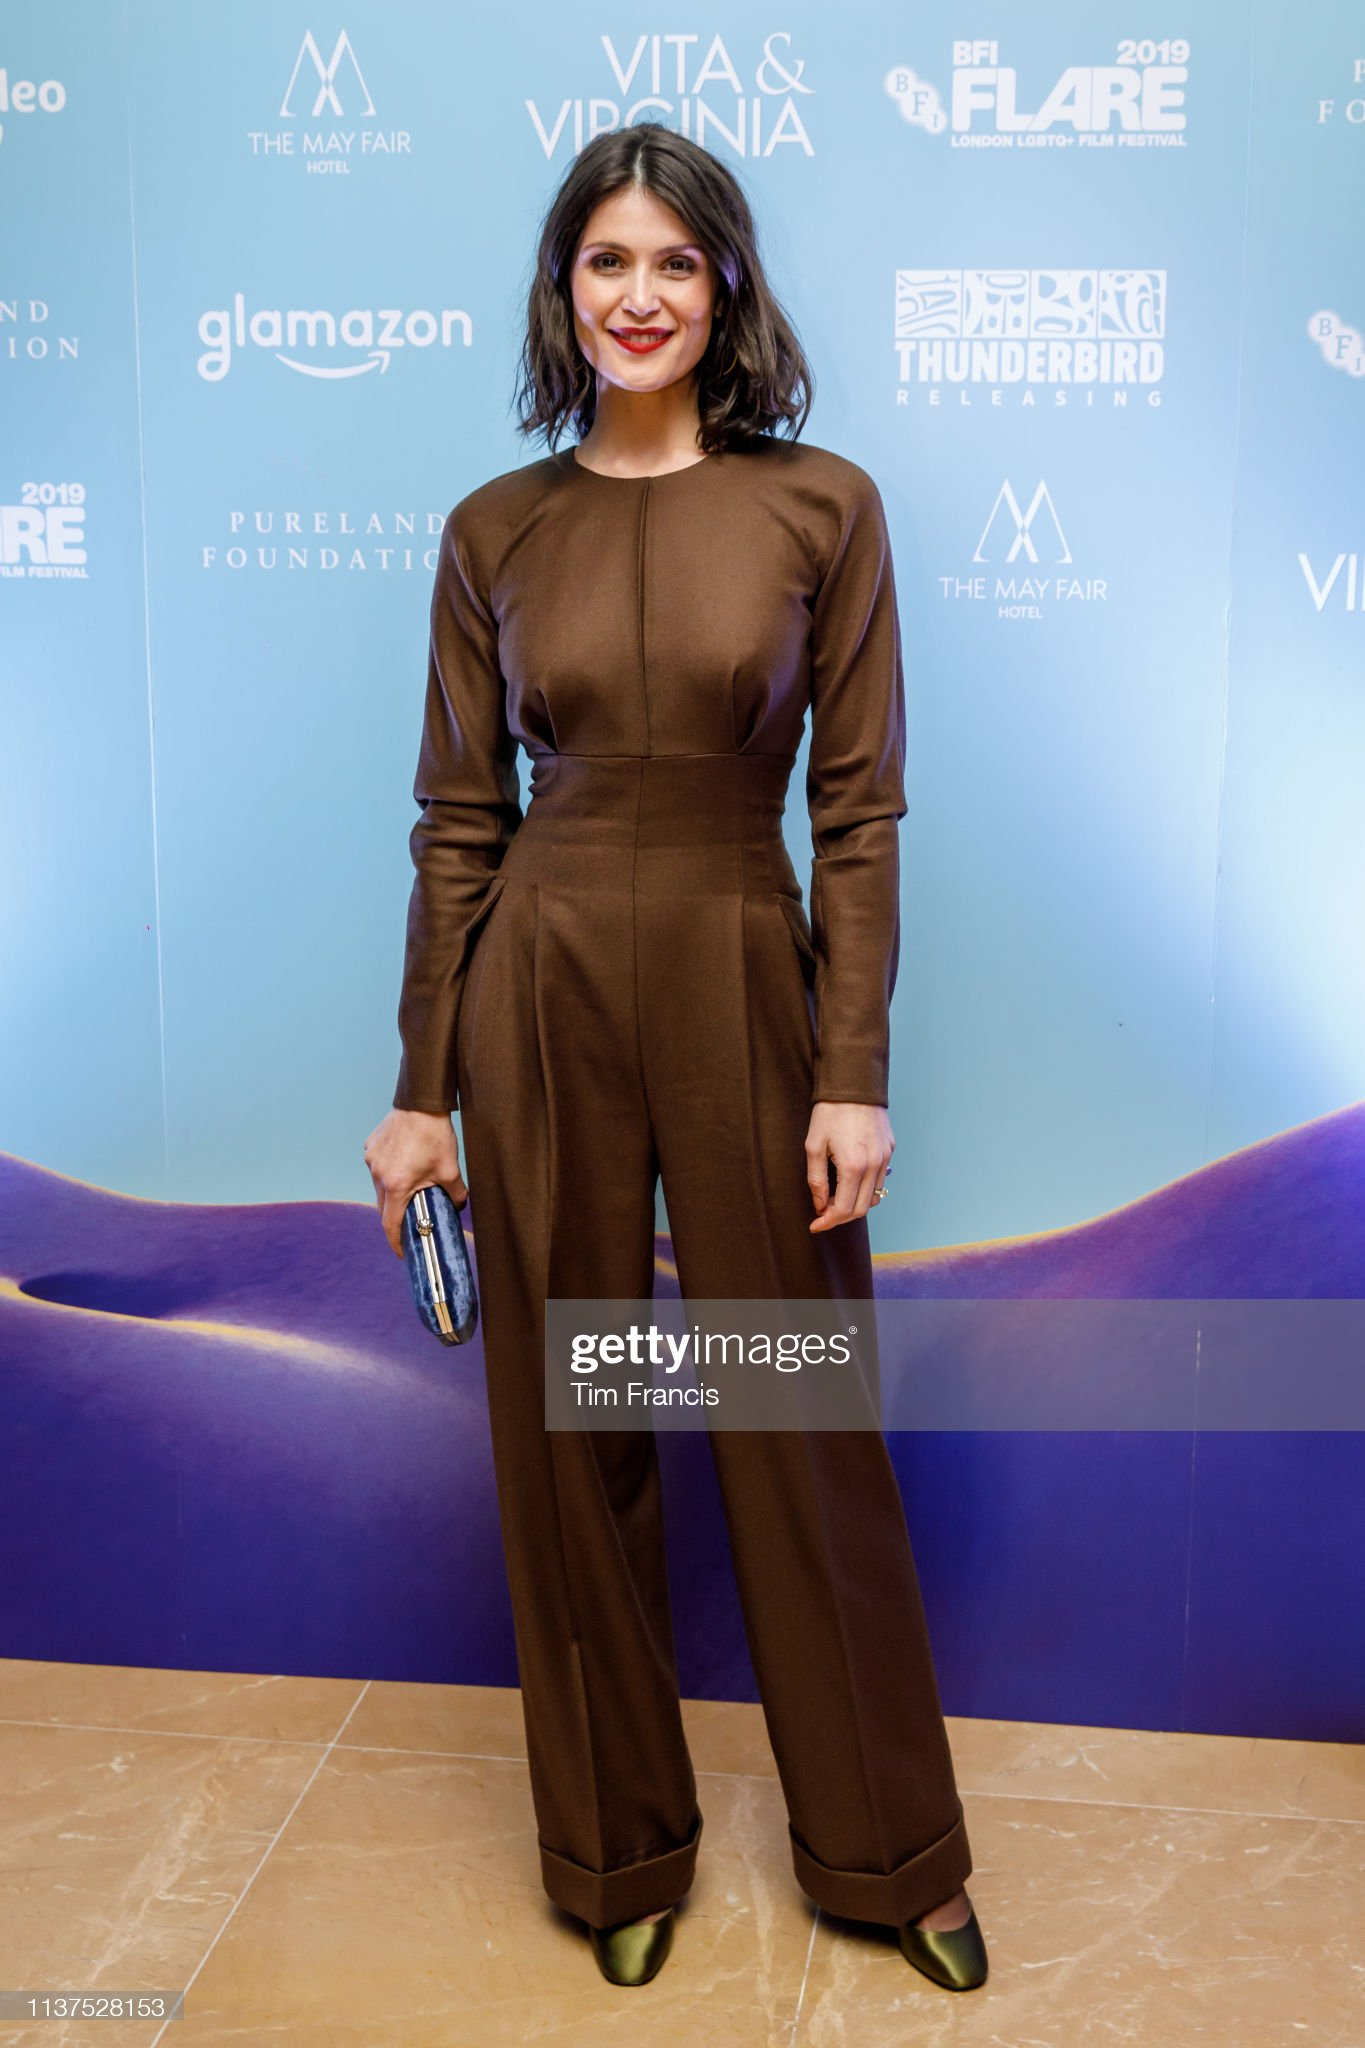 gemma-arterton-poses-during-the-opening-night-gala-party-of-the-33rd-picture-id1137528153